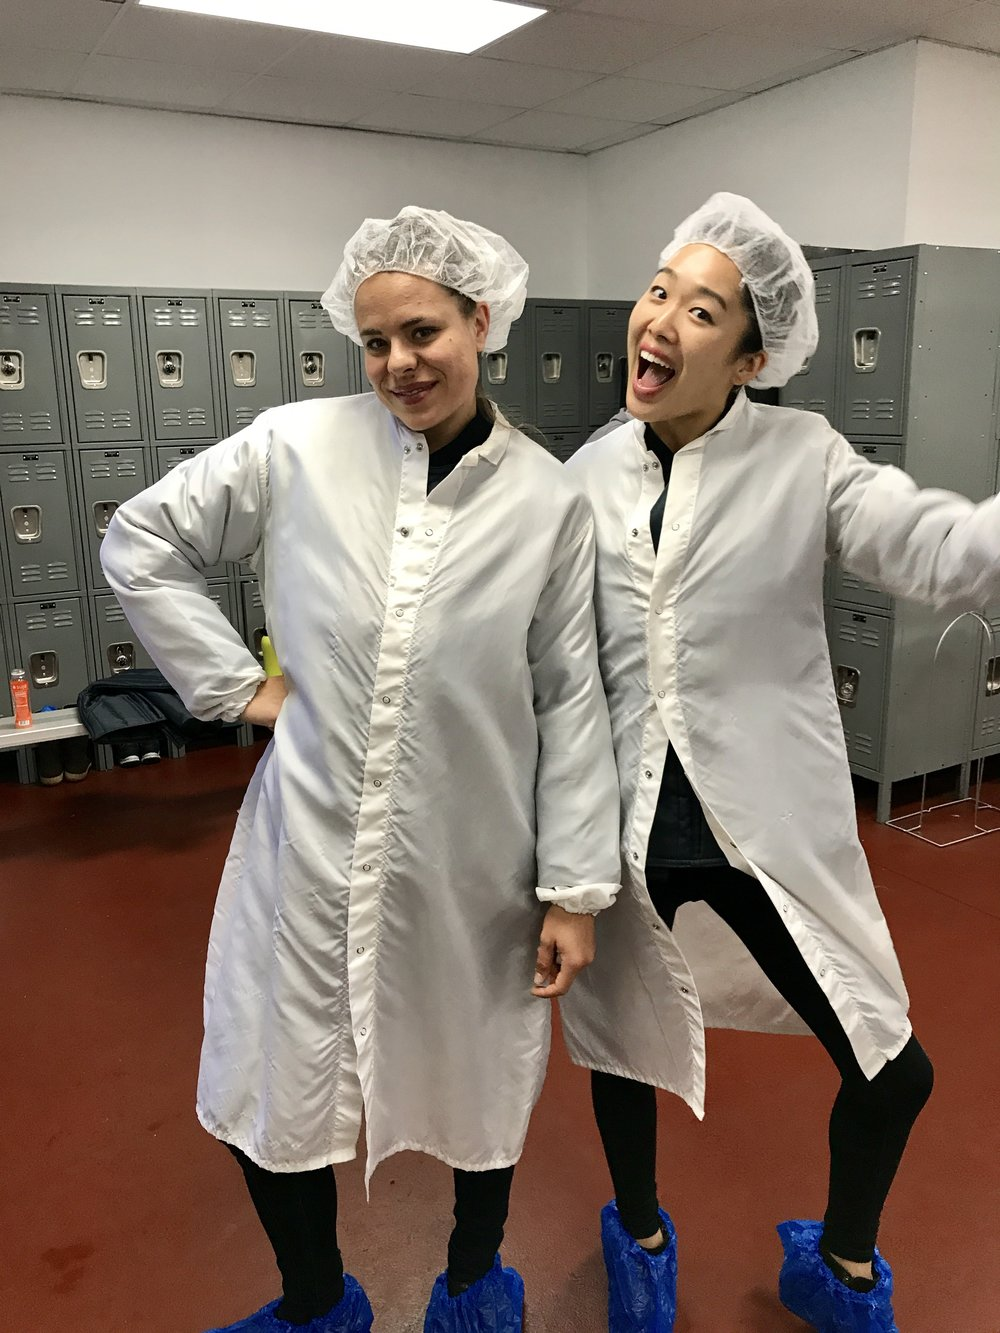 manufacturing-chic - we've been sanitized.